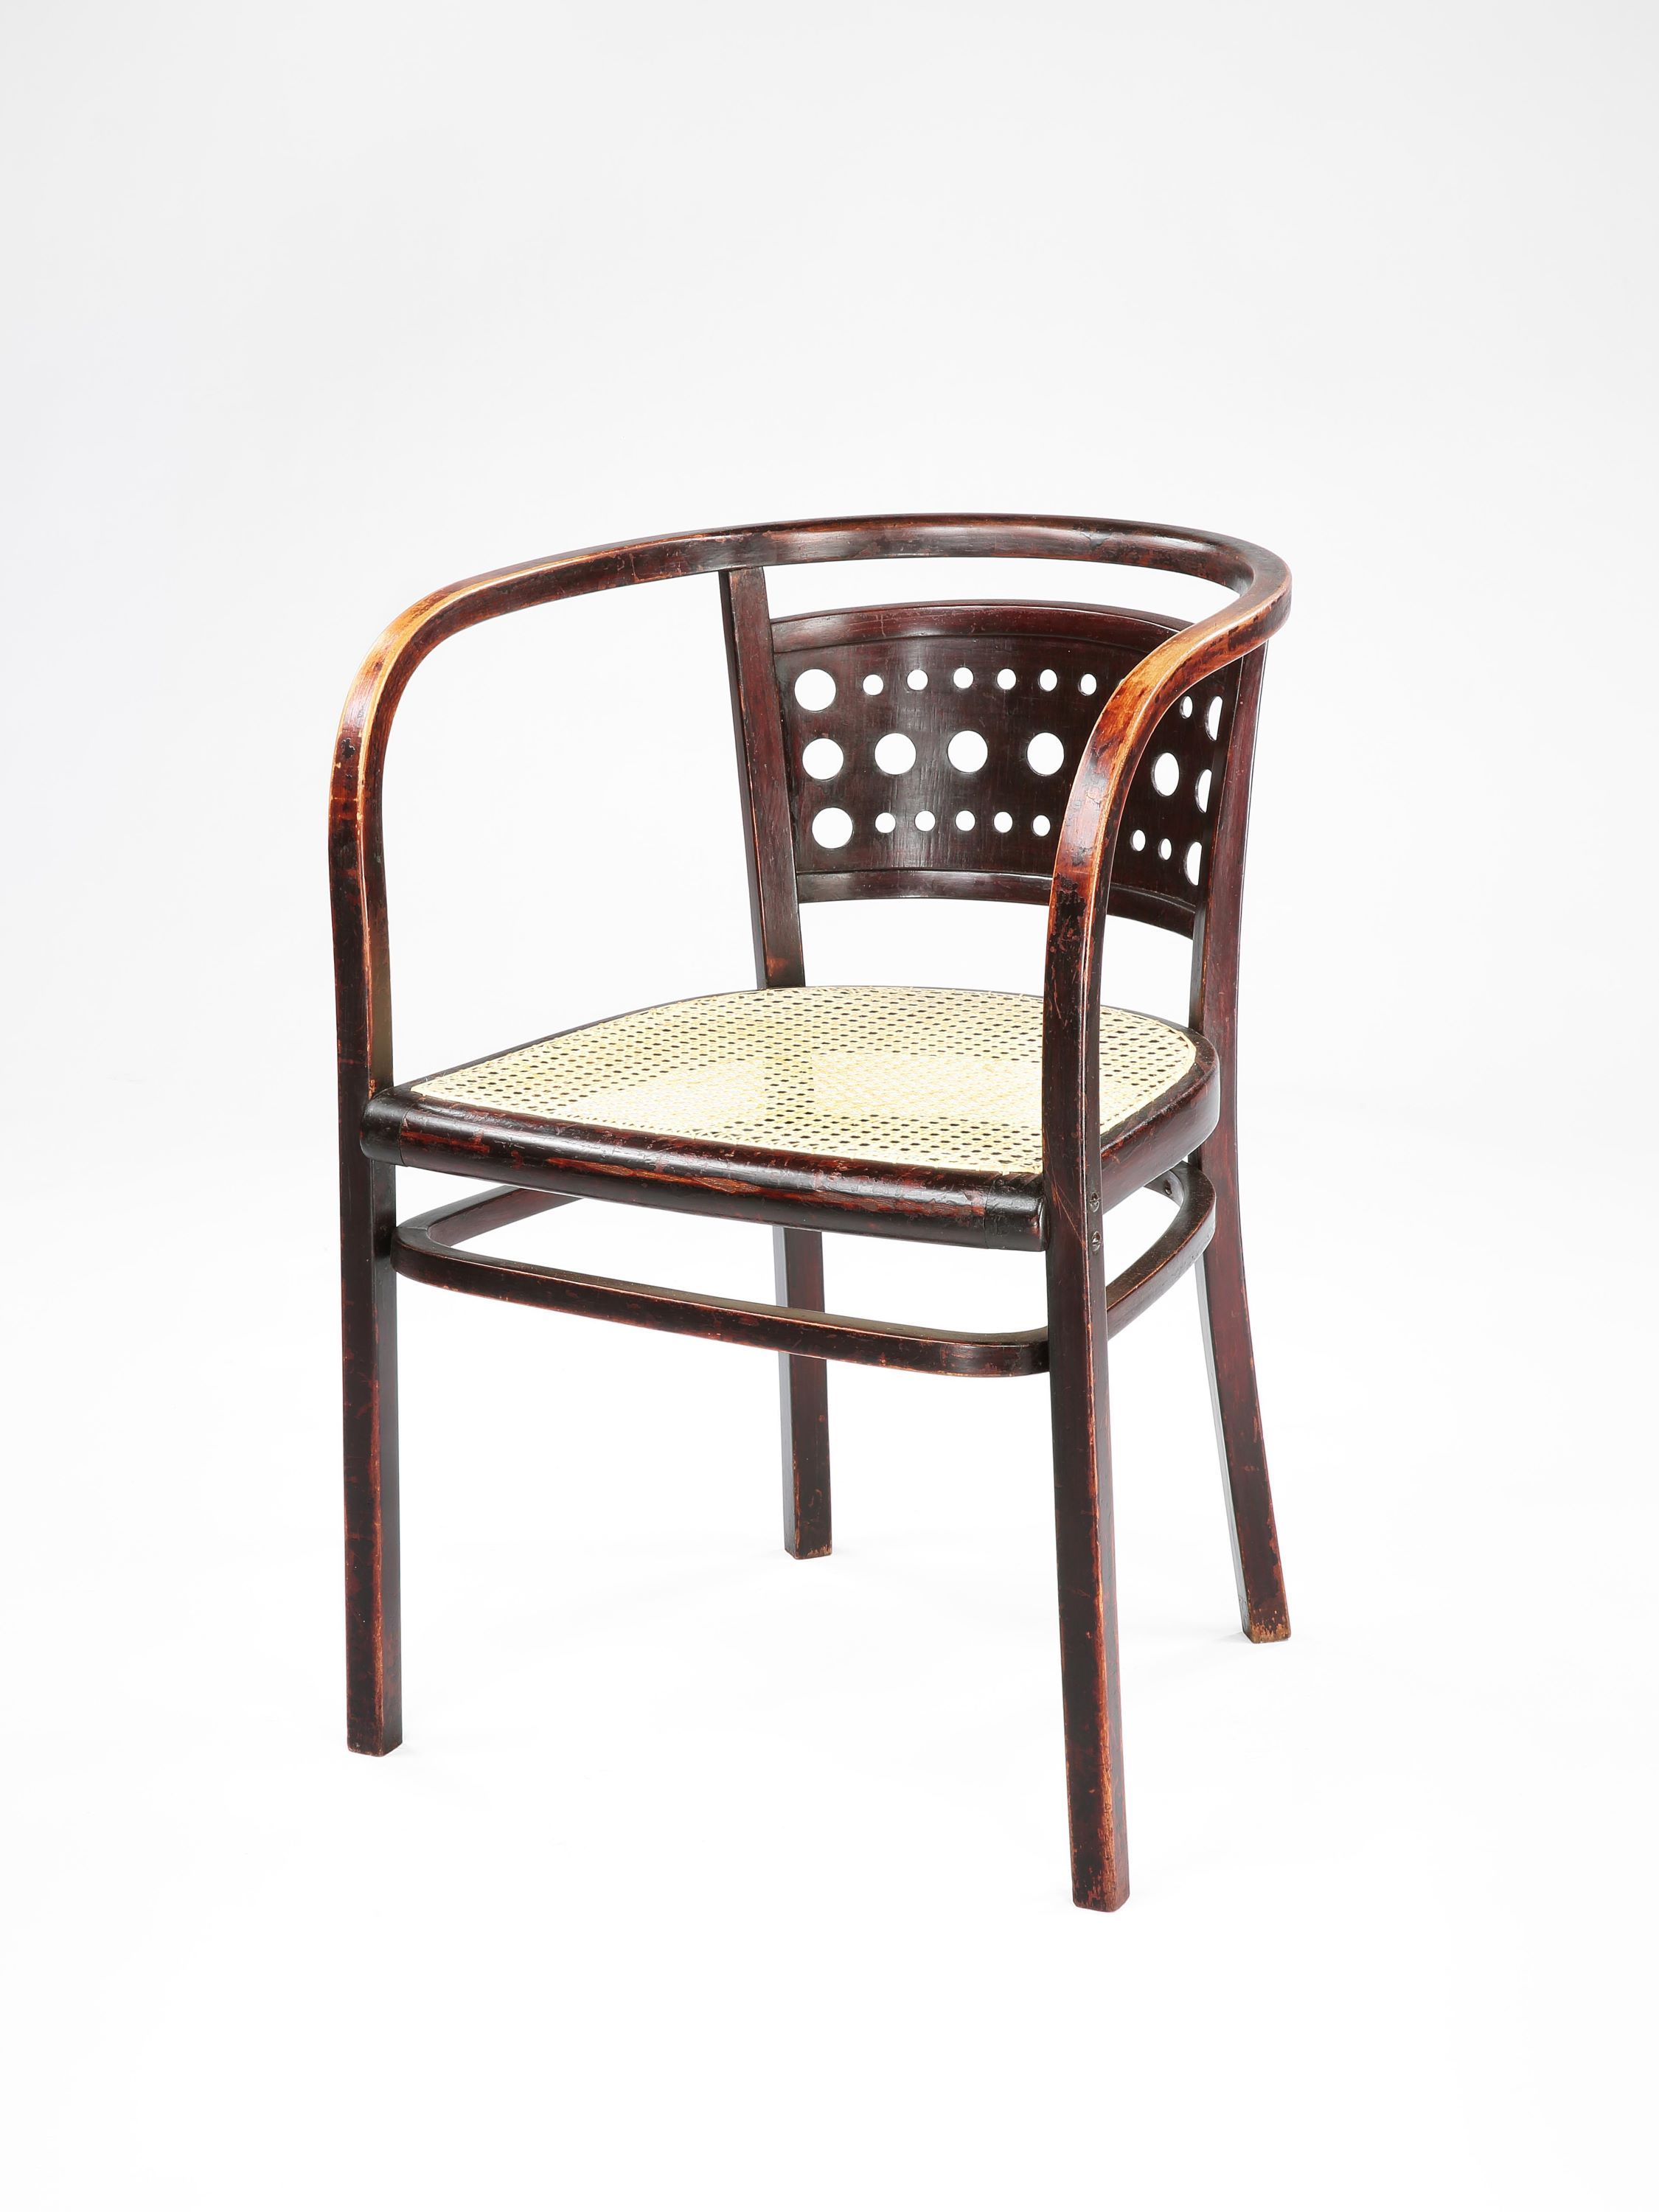 Marvelous Secessionist Bentwood Elbow Chair By Thonet Machost Co Dining Chair Design Ideas Machostcouk